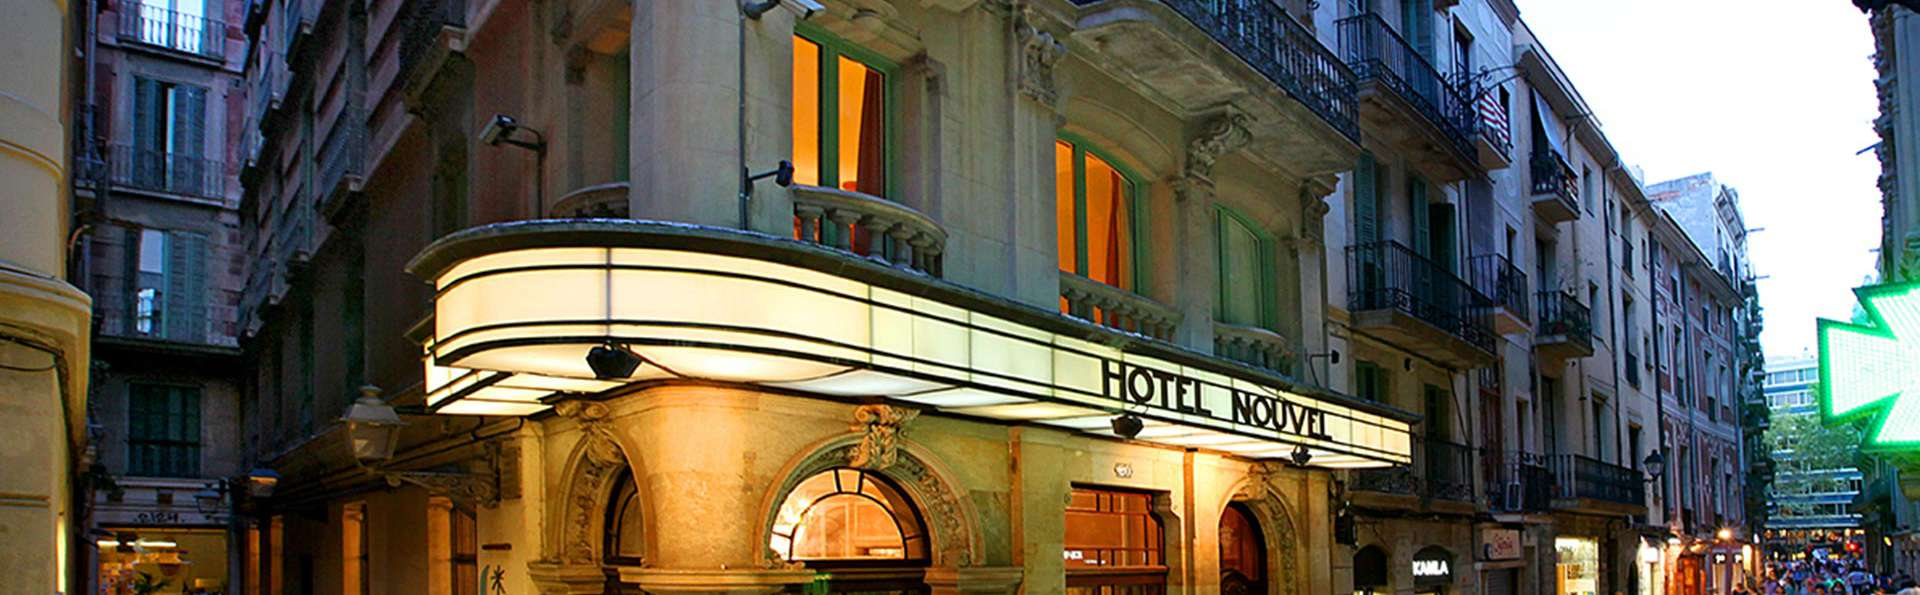 Hotel Nouvel - EDIT_front1.jpg